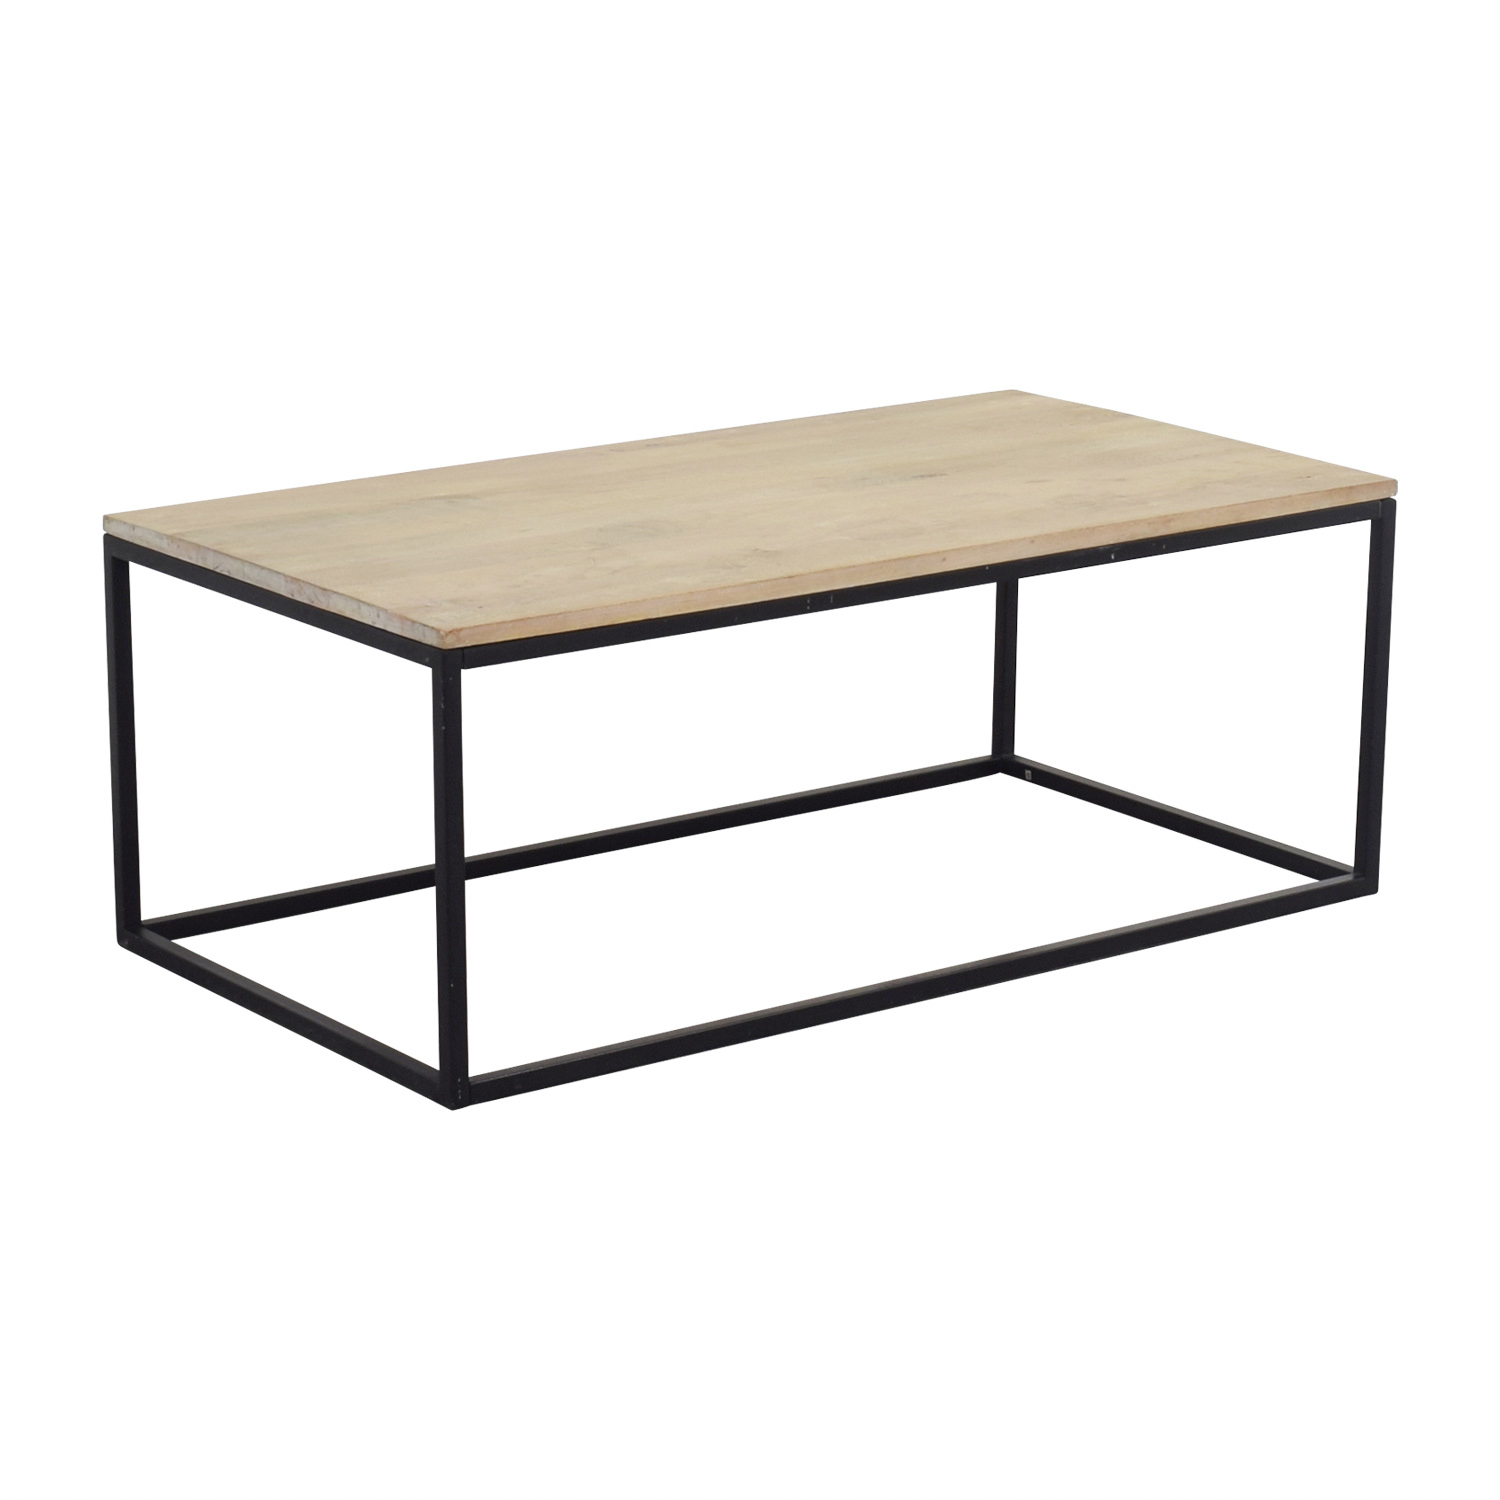 Crate & Barrel Crate & Barrel Natural Wood Coffee Table price